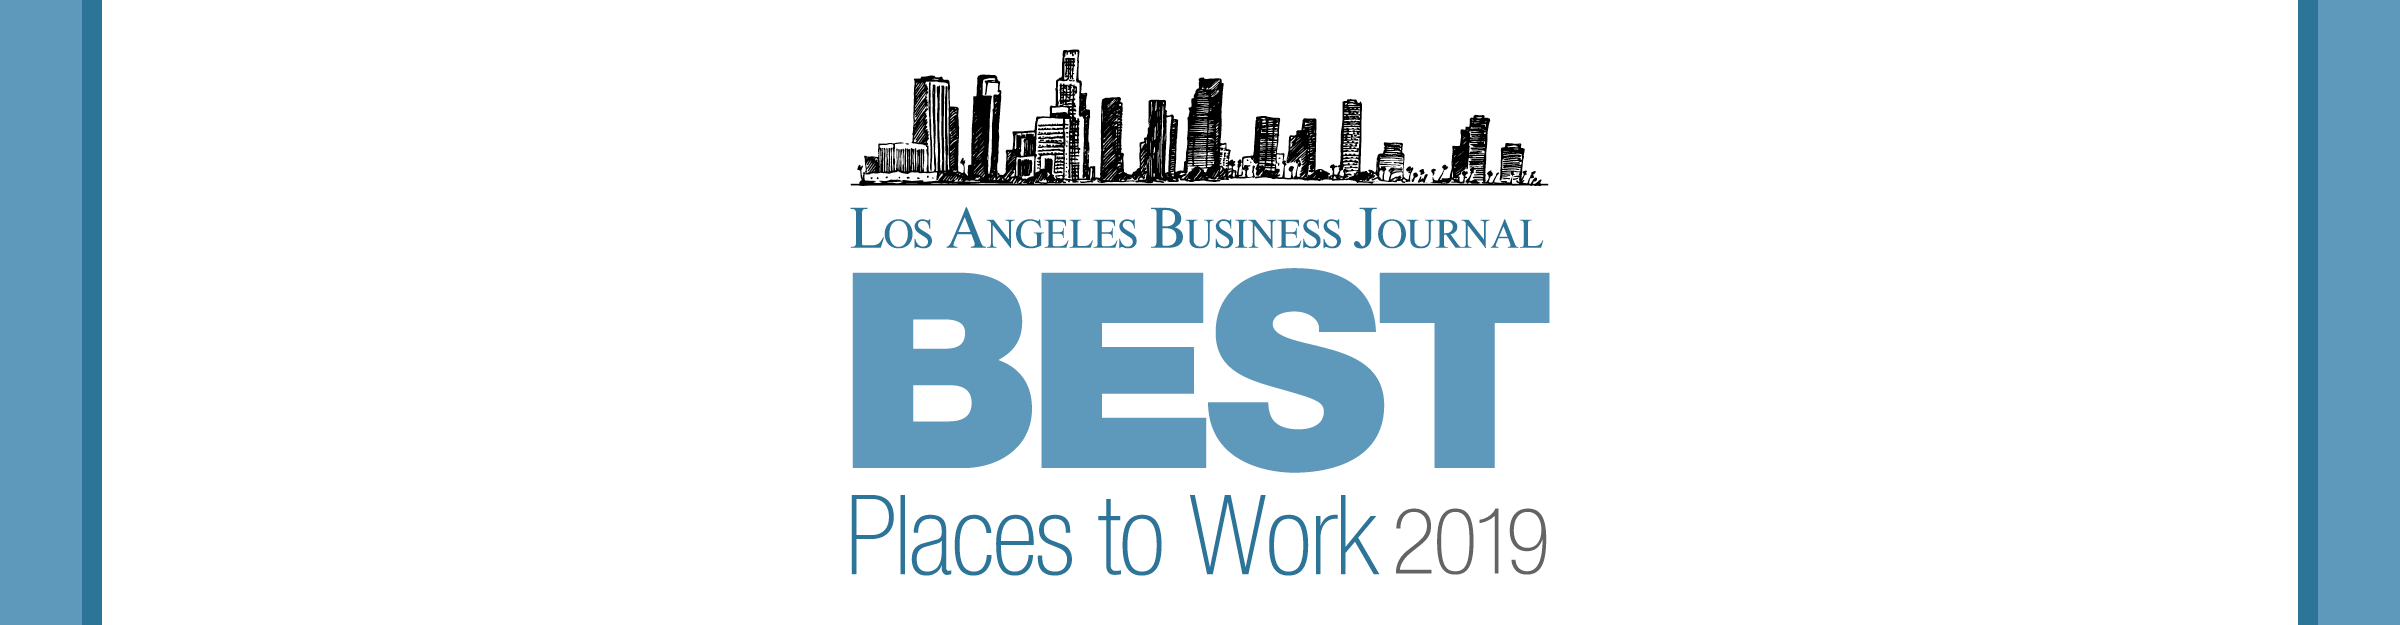 Los Angeles Business Journal Best Places to Work Awards Event Banner